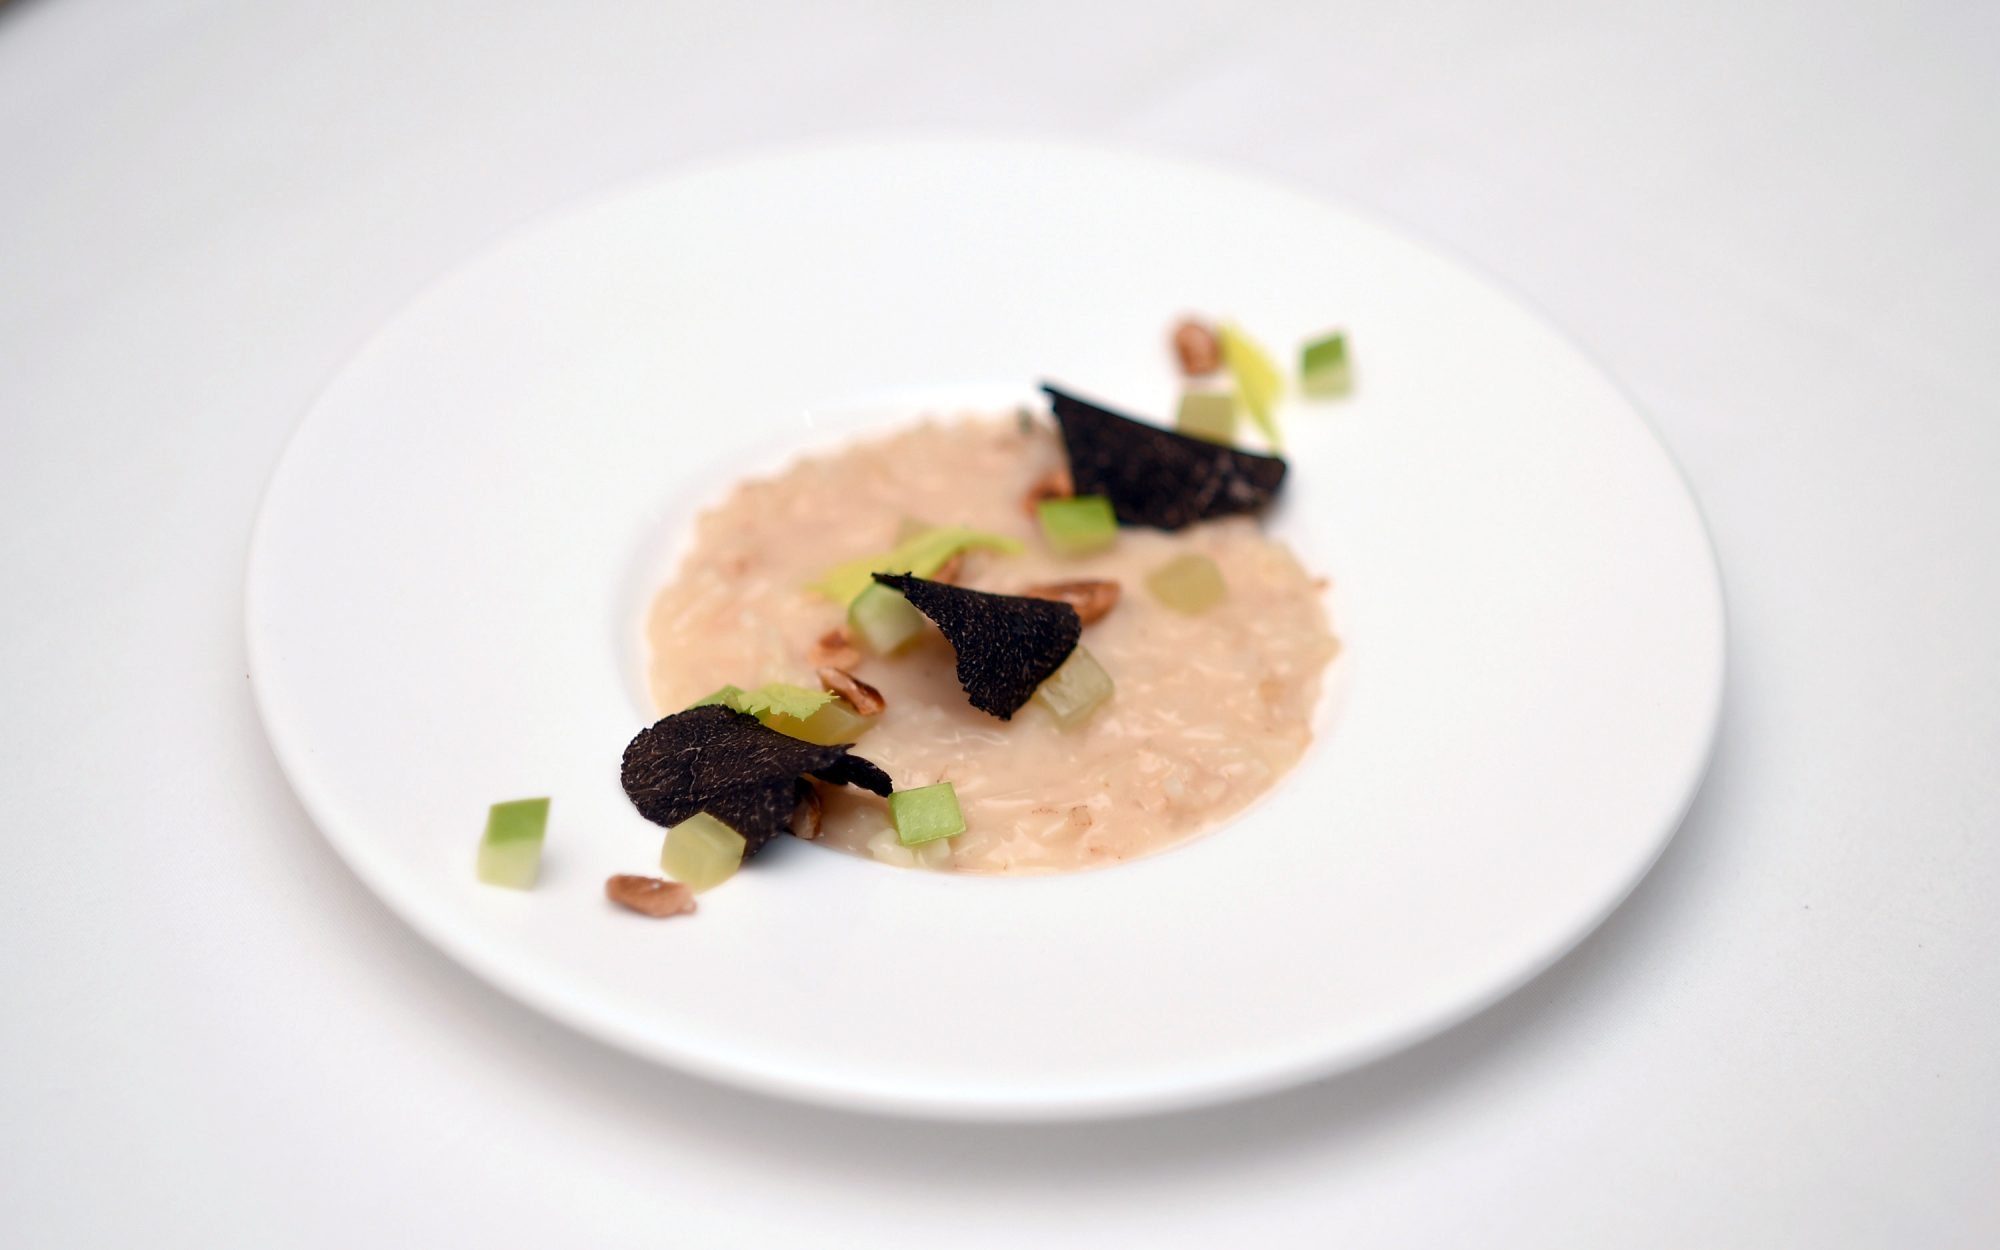 Waldorf-Astoria Announces New Signature Dish: Celery Risotto Alla Waldorf